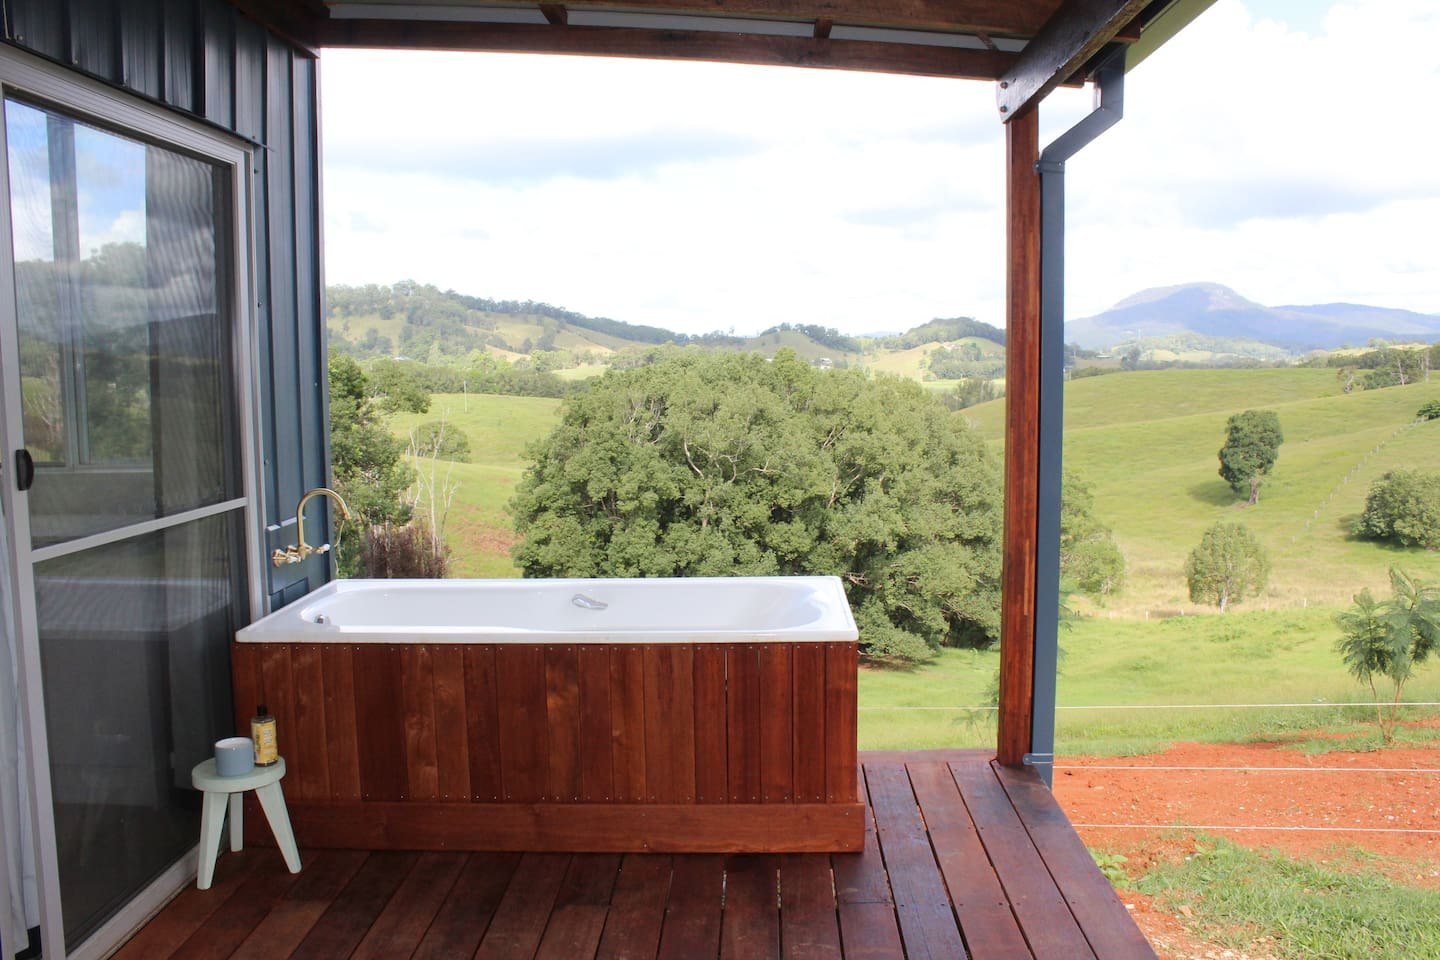 Outdoor bath to view the stars from!